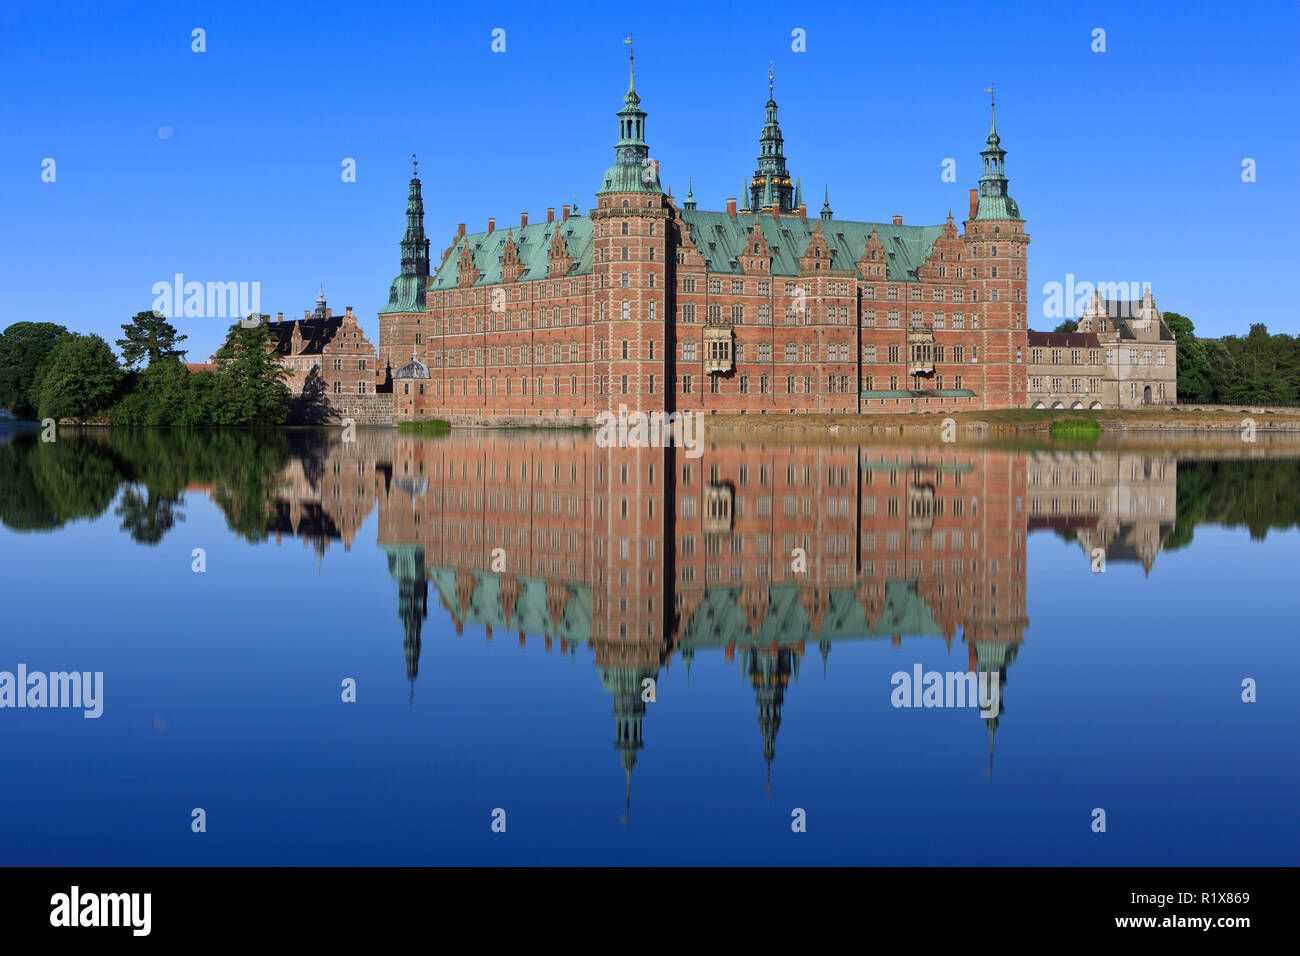 The truly beautiful and majestic 17th-century Frederiksborg Castle (royal residence of King Christian IV) in Hillerod, Denmark - Stock Image